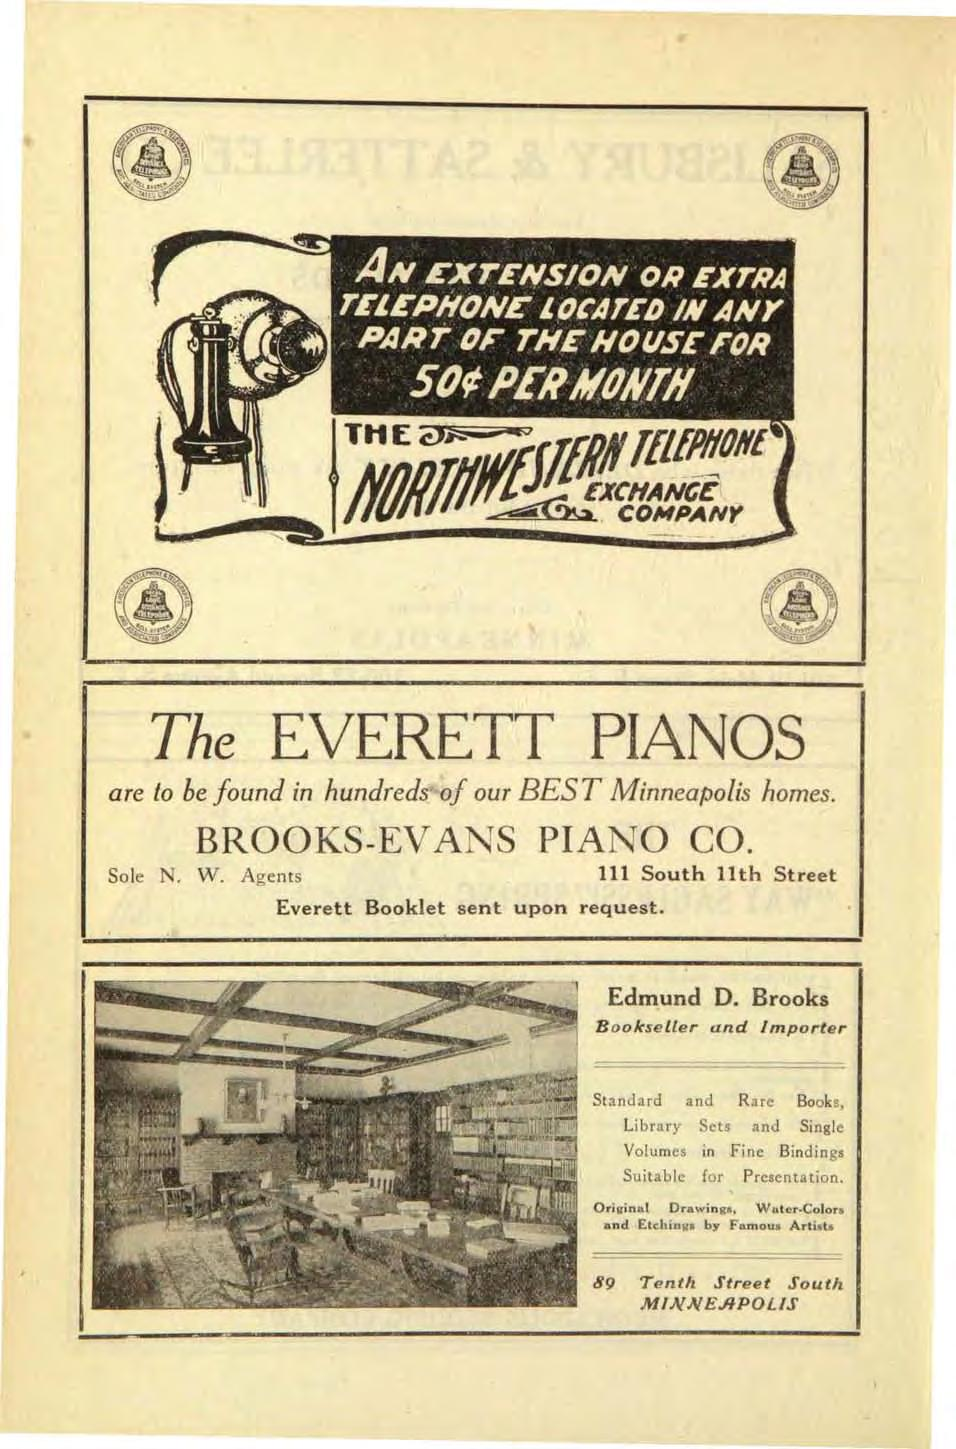 The EVERETT PIANOS are to be found in hundreds of our BES T Minneapolis homes. BROOKS-EVANS PIANO CO. Sole N. W. Agents 111 South 11th Street Everett Booklet sent upon request. Edmund D.